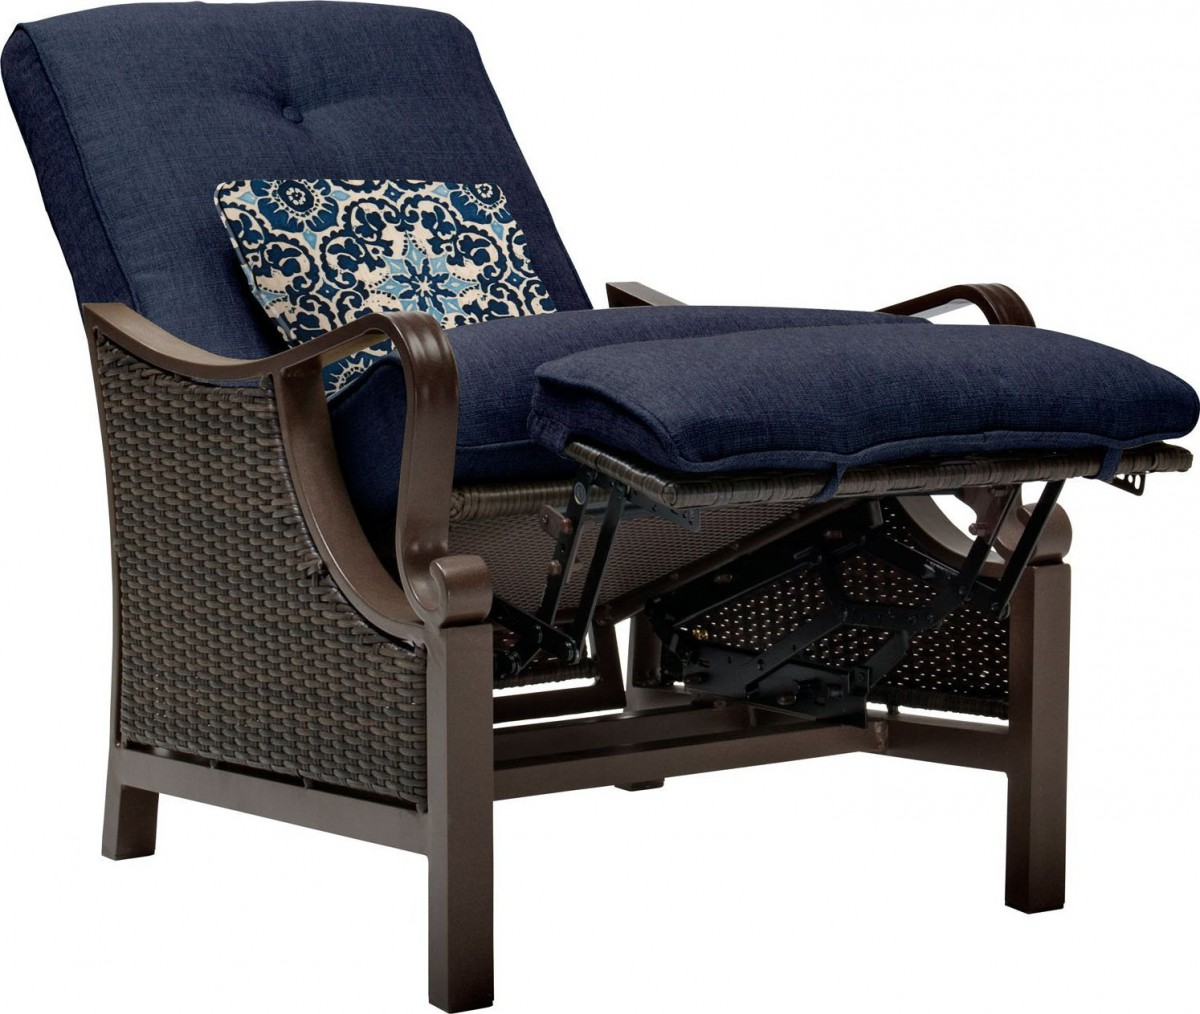 wicker recliner chair covers for sporting events hanover ventura luxury resin outdoor